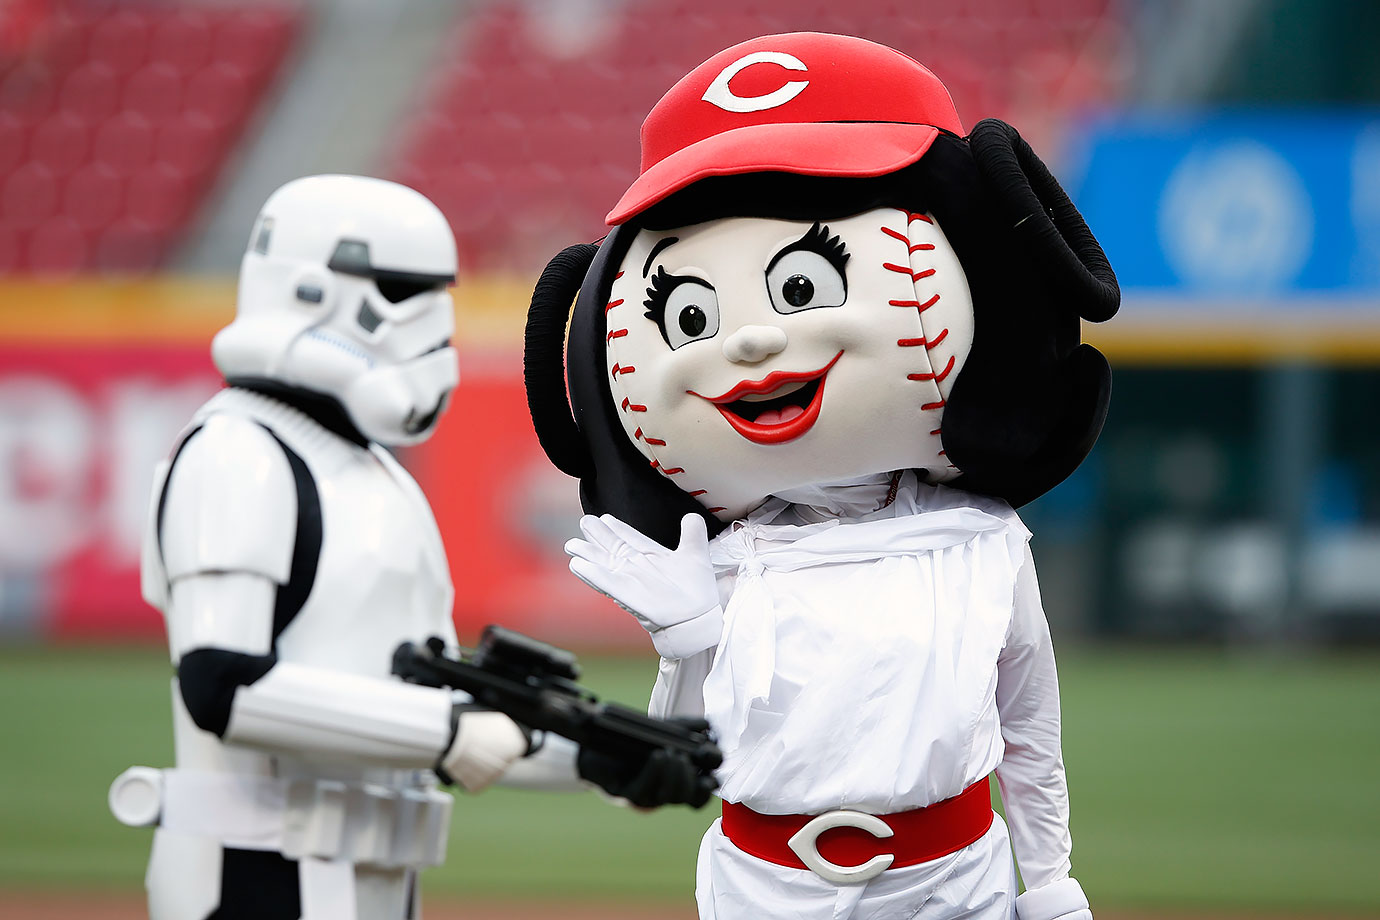 Cincinnati Reds mascot Rosie Red waves before the game against the San Francisco Giants on May 15, 2015 at Great American Ball Park in Cincinnati, Ohio.